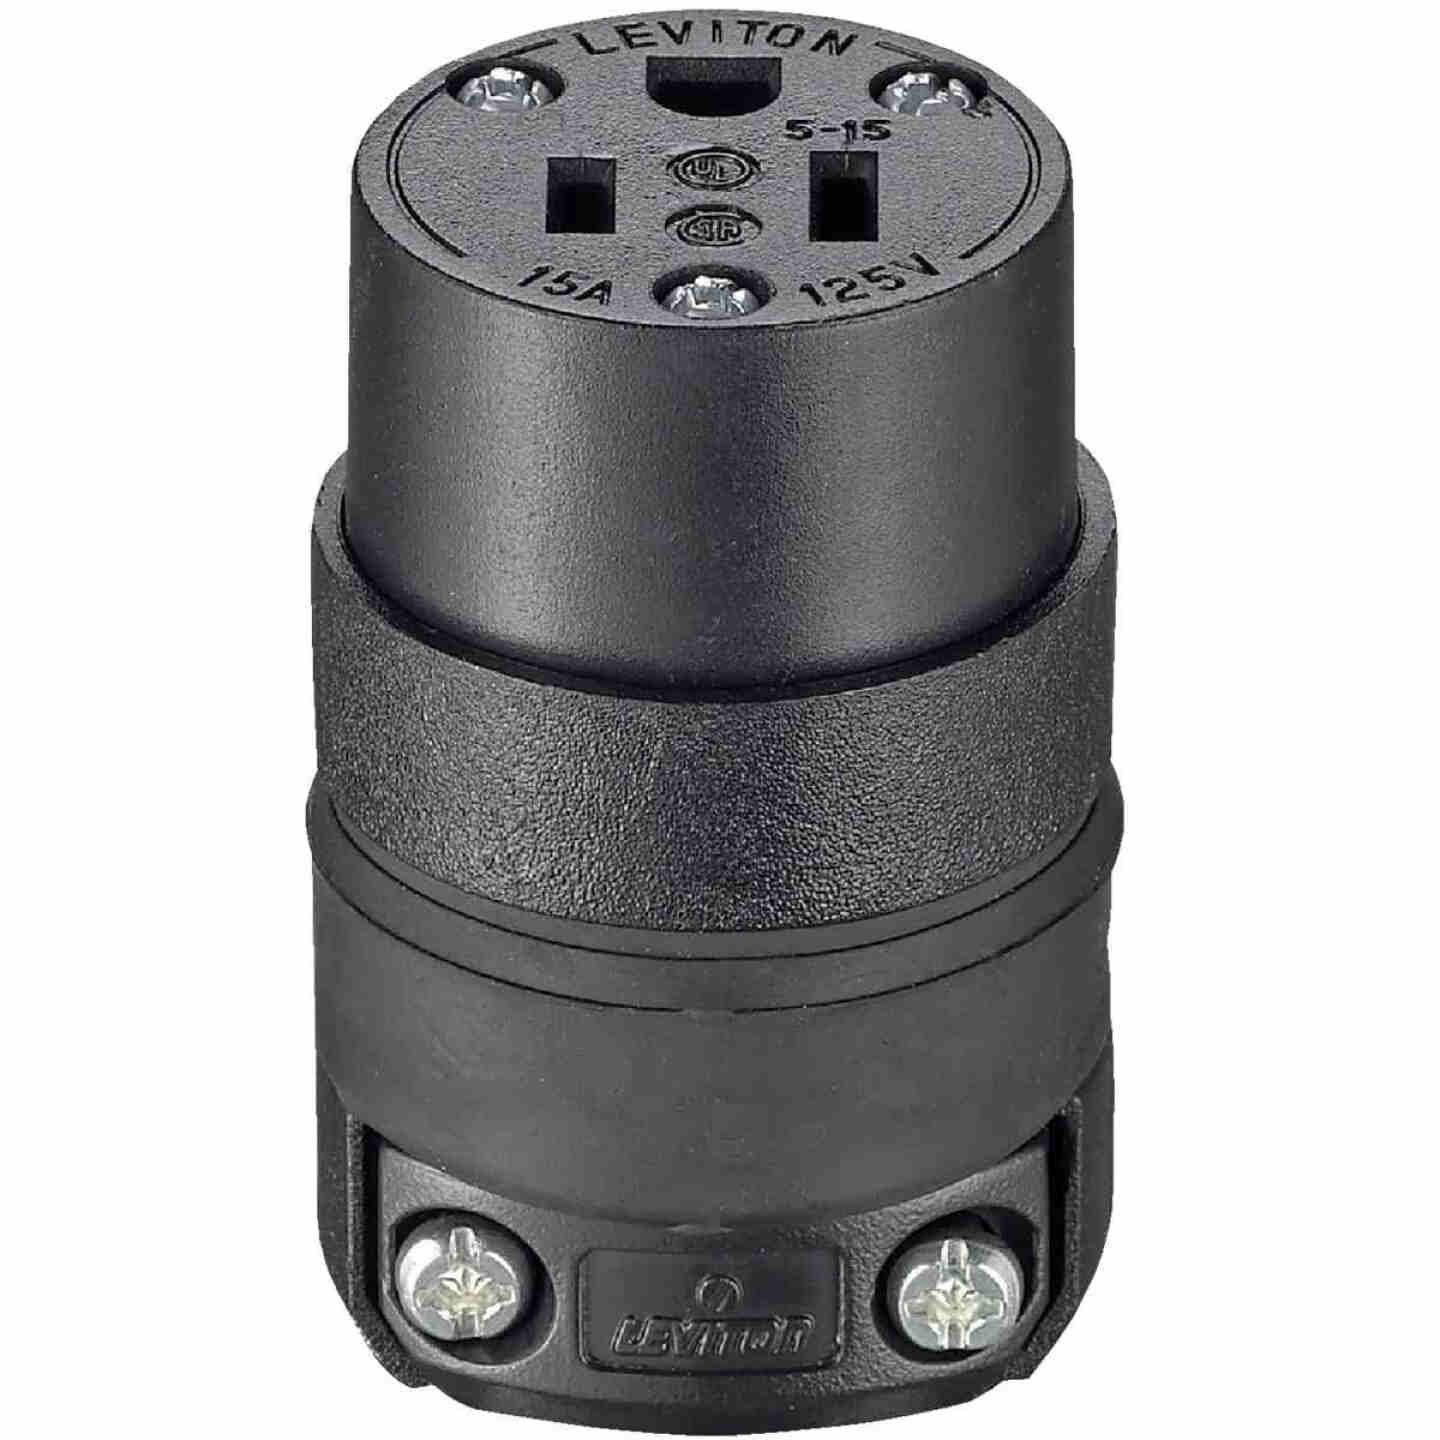 Do it 15A 125V 3-Wire 2-Pole Rough Use Cord Connector Image 3